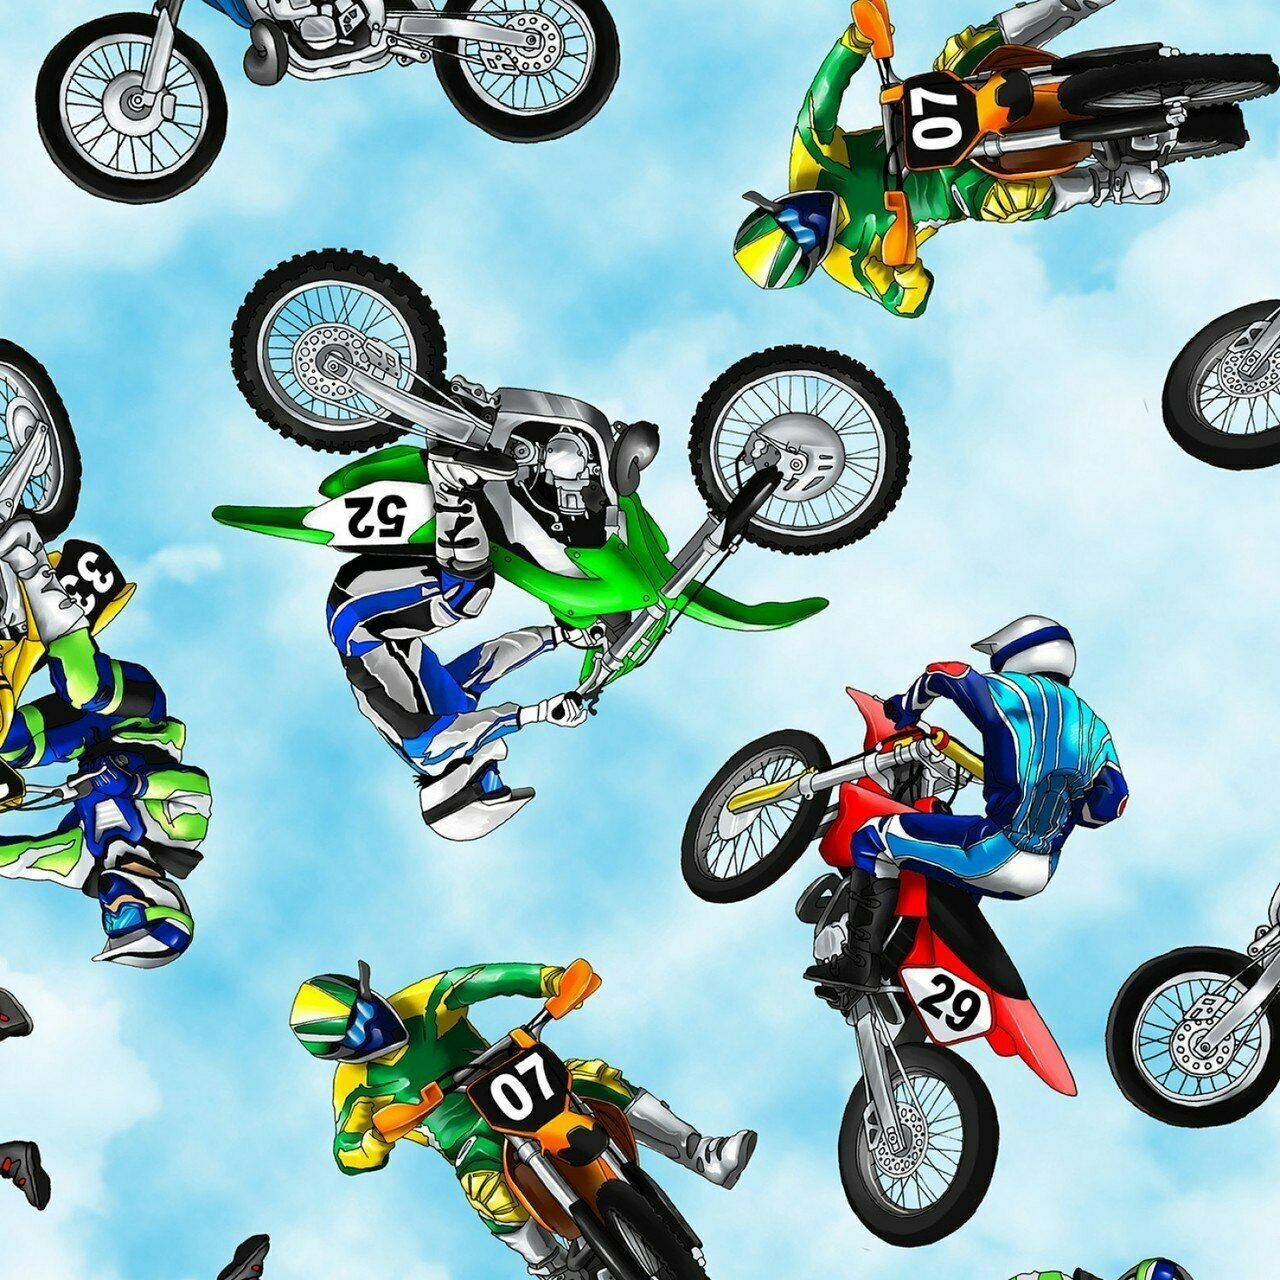 Mini Dirt Bikes-Motorcycles Cotton Fabric By Timeless